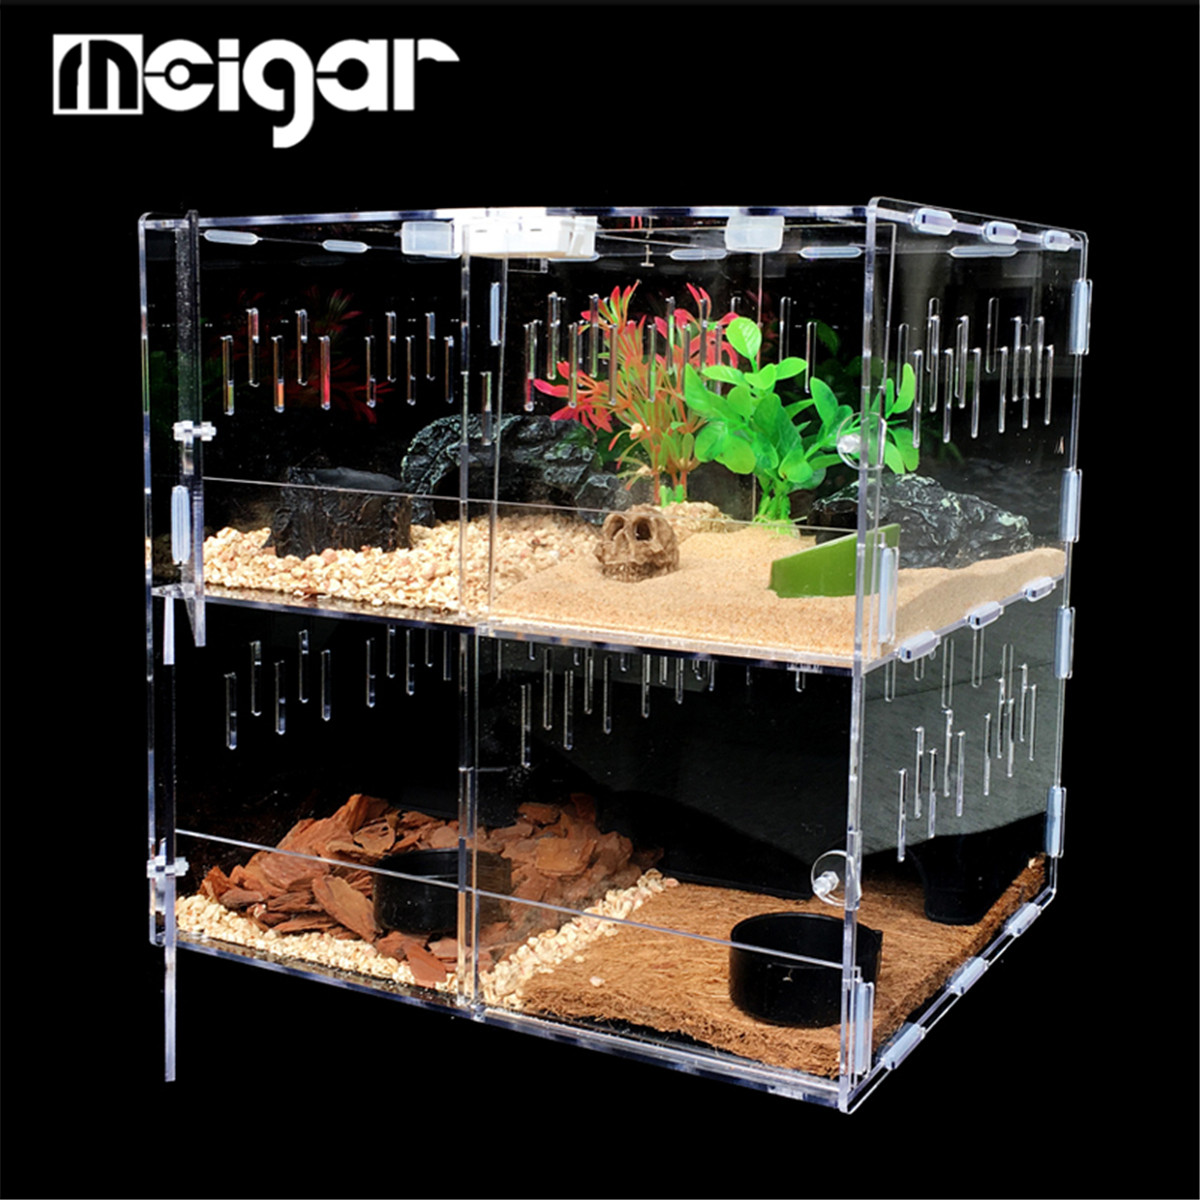 4 Grids Acrylic Pet Reptile Tank Insect Spiders Lizard Breeding Box Tortoise Snakes House Cage Terrarium Reptiles Supplies